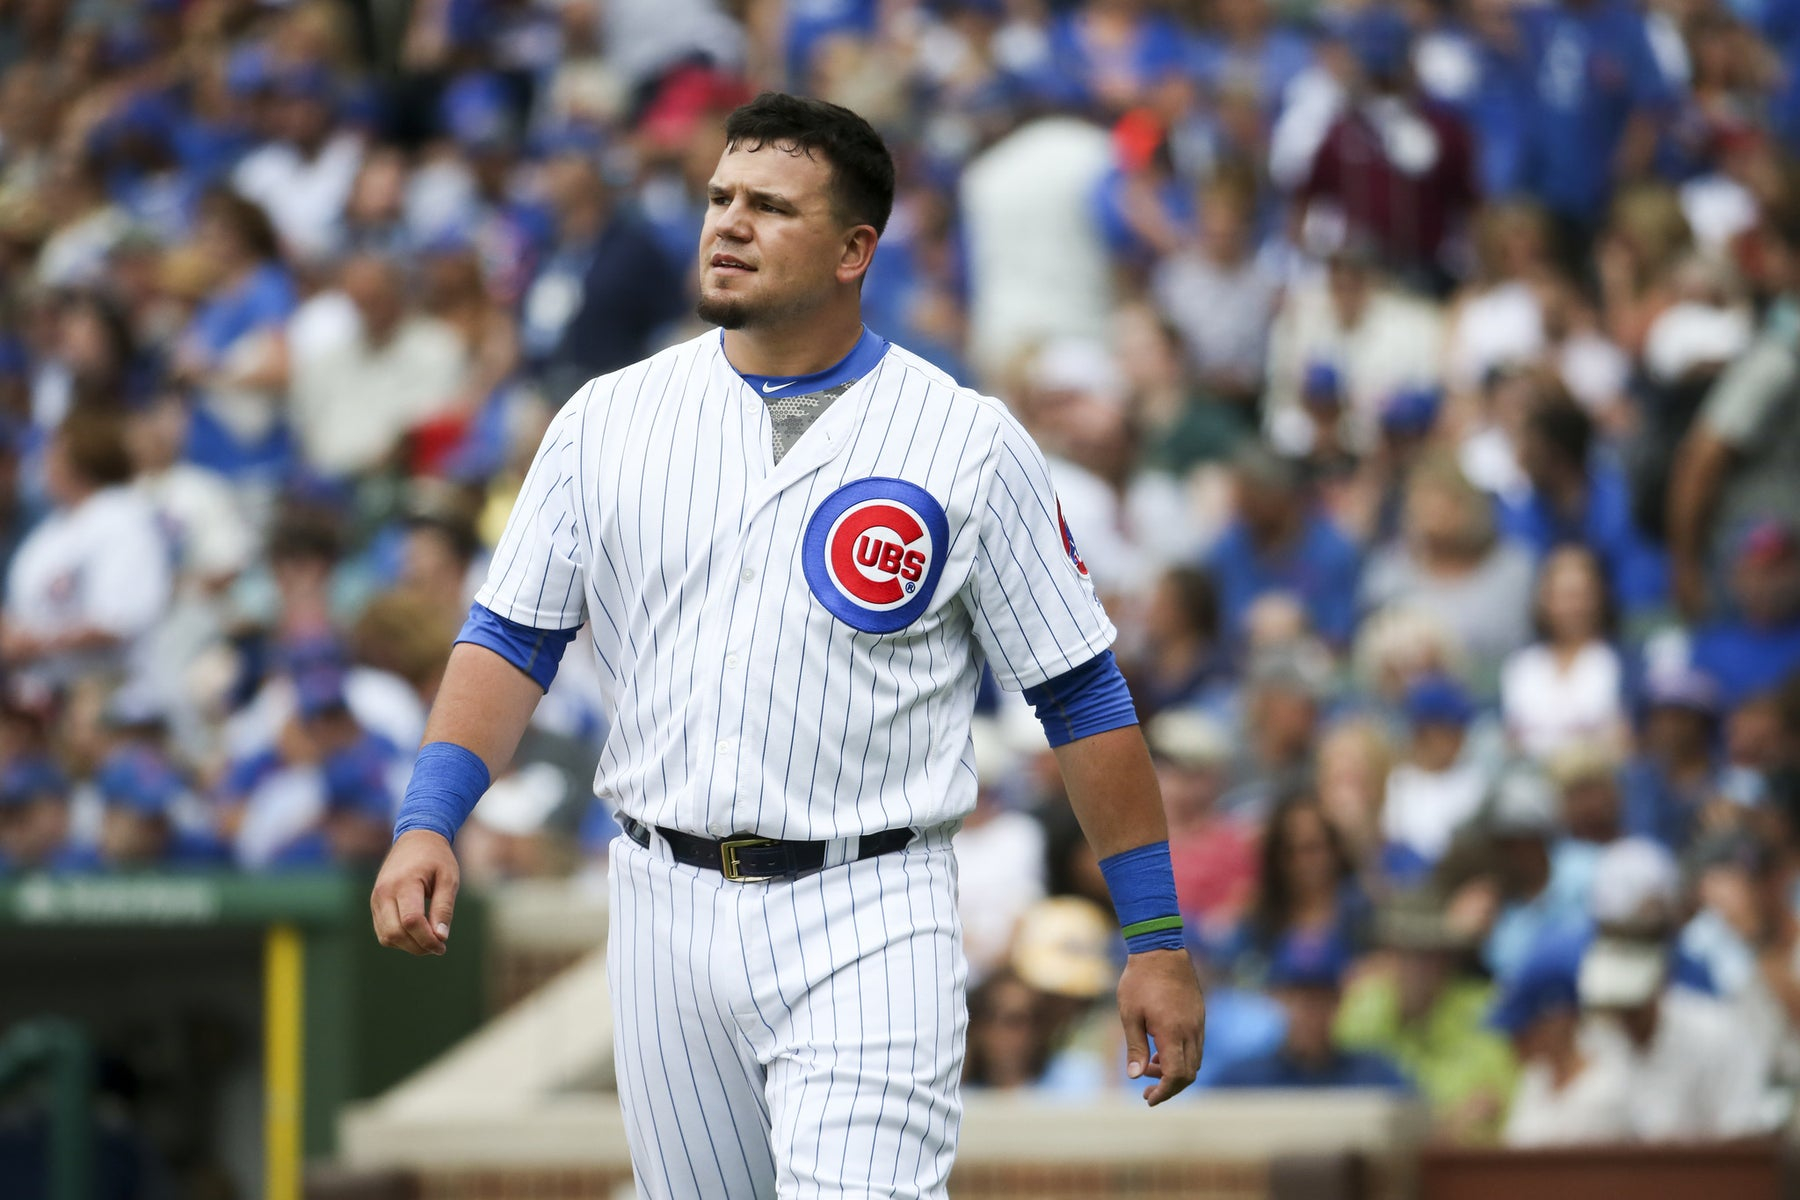 Cubs' Kyle Schwarber: Out against left-hander